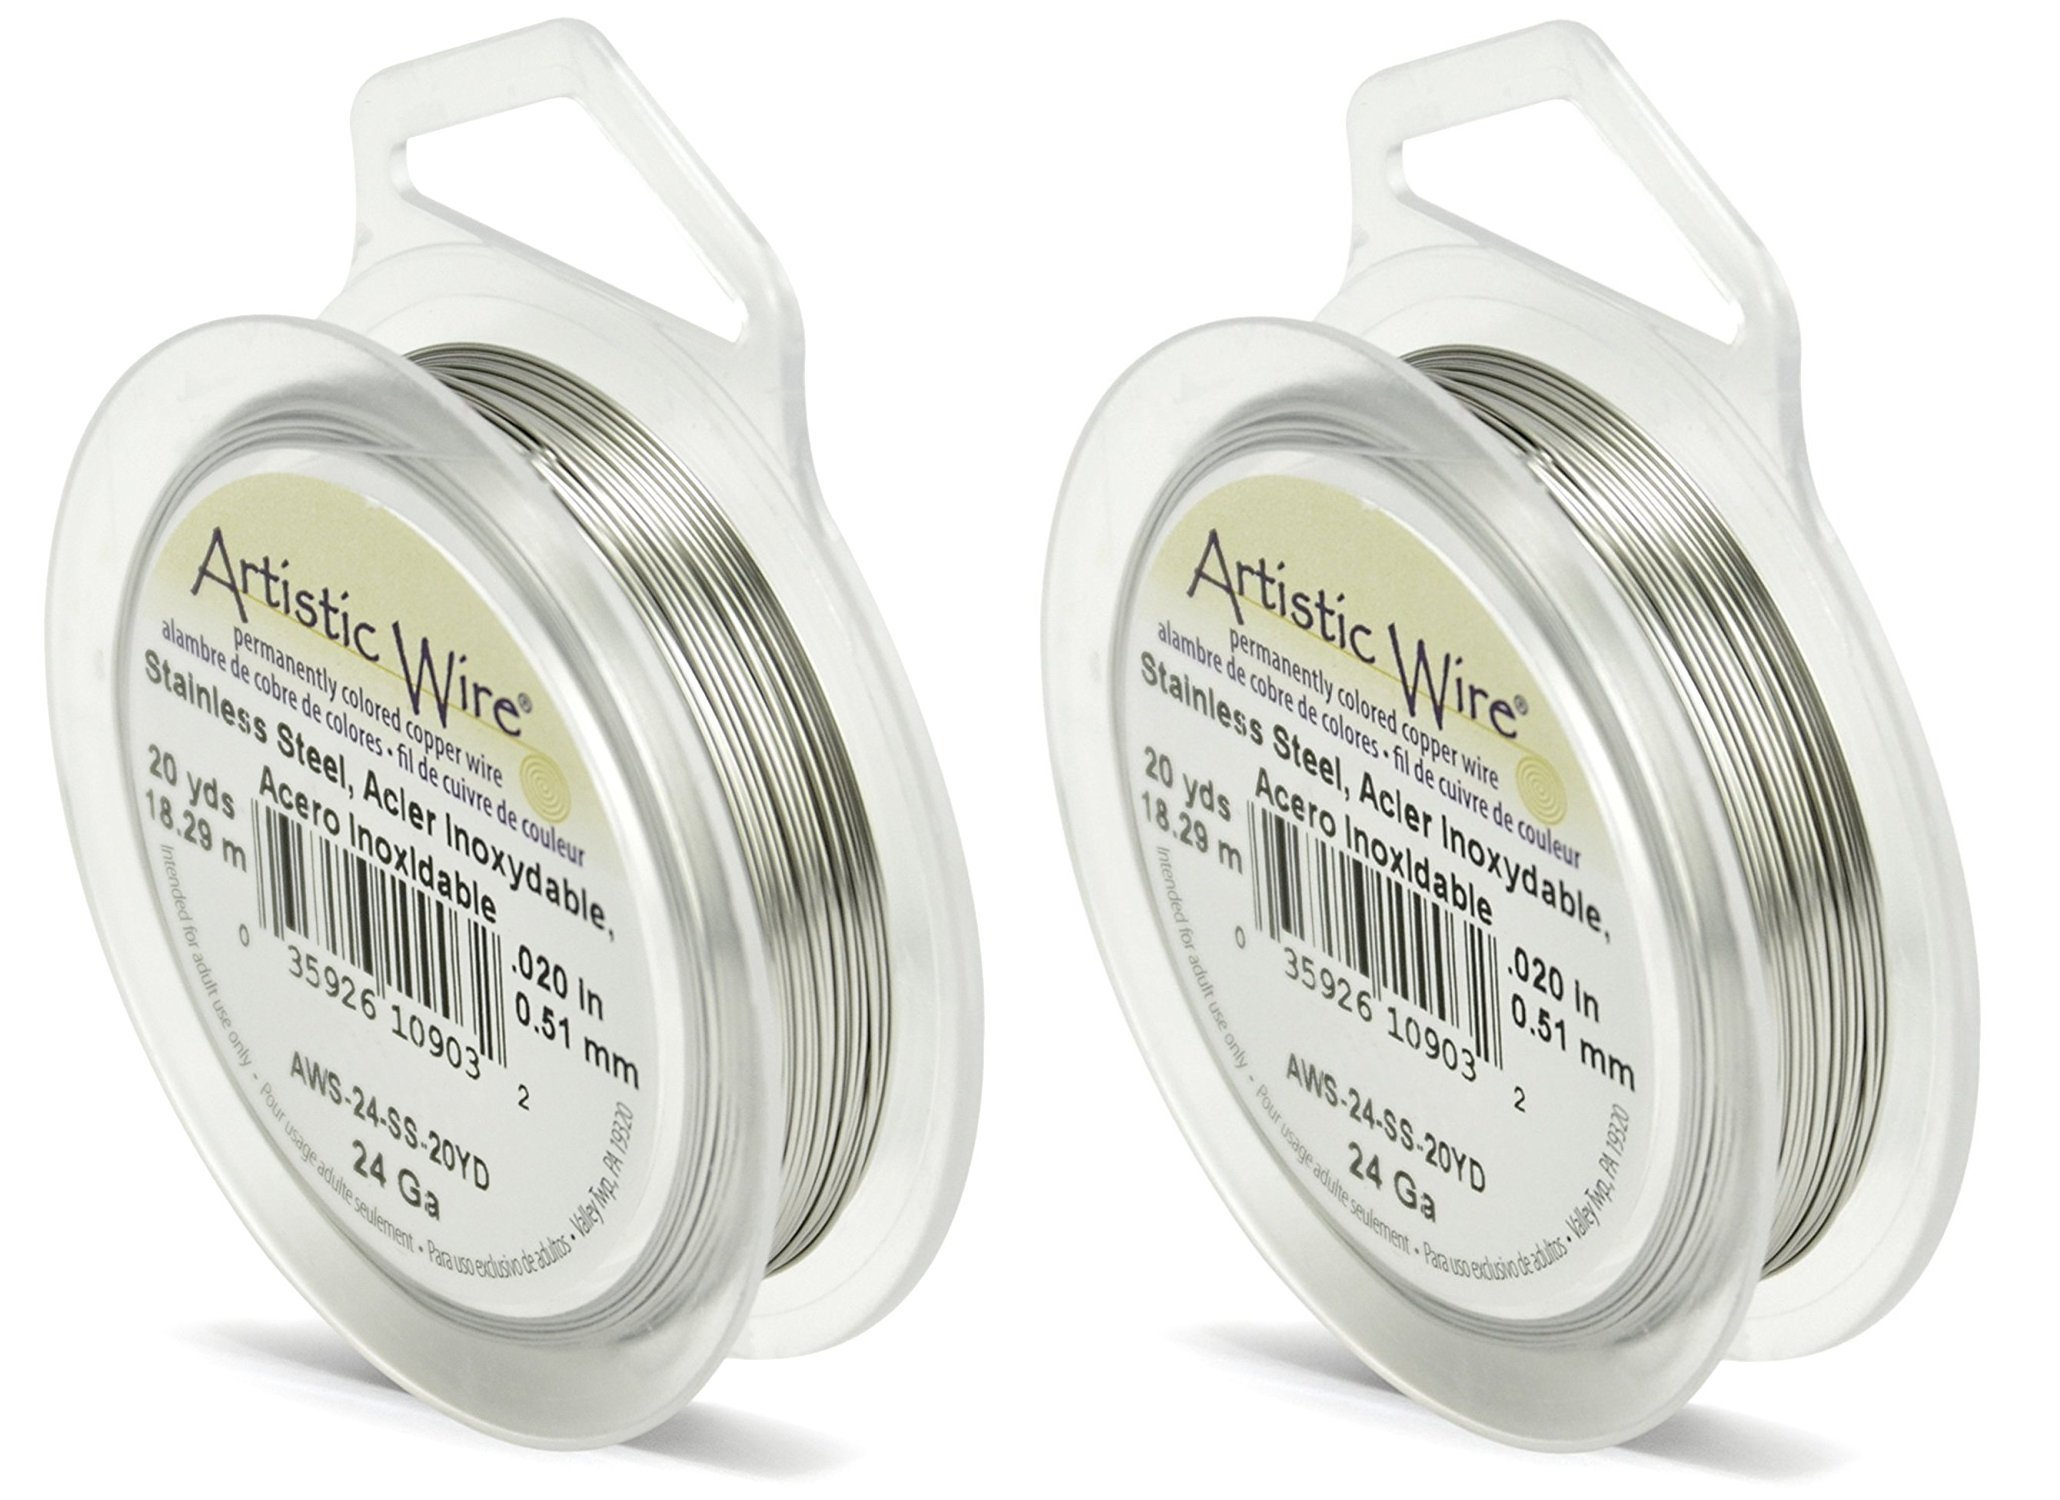 39.3 Artistic Wire 12 Gauge Round Anodized Aluminum Craft Wire Rose